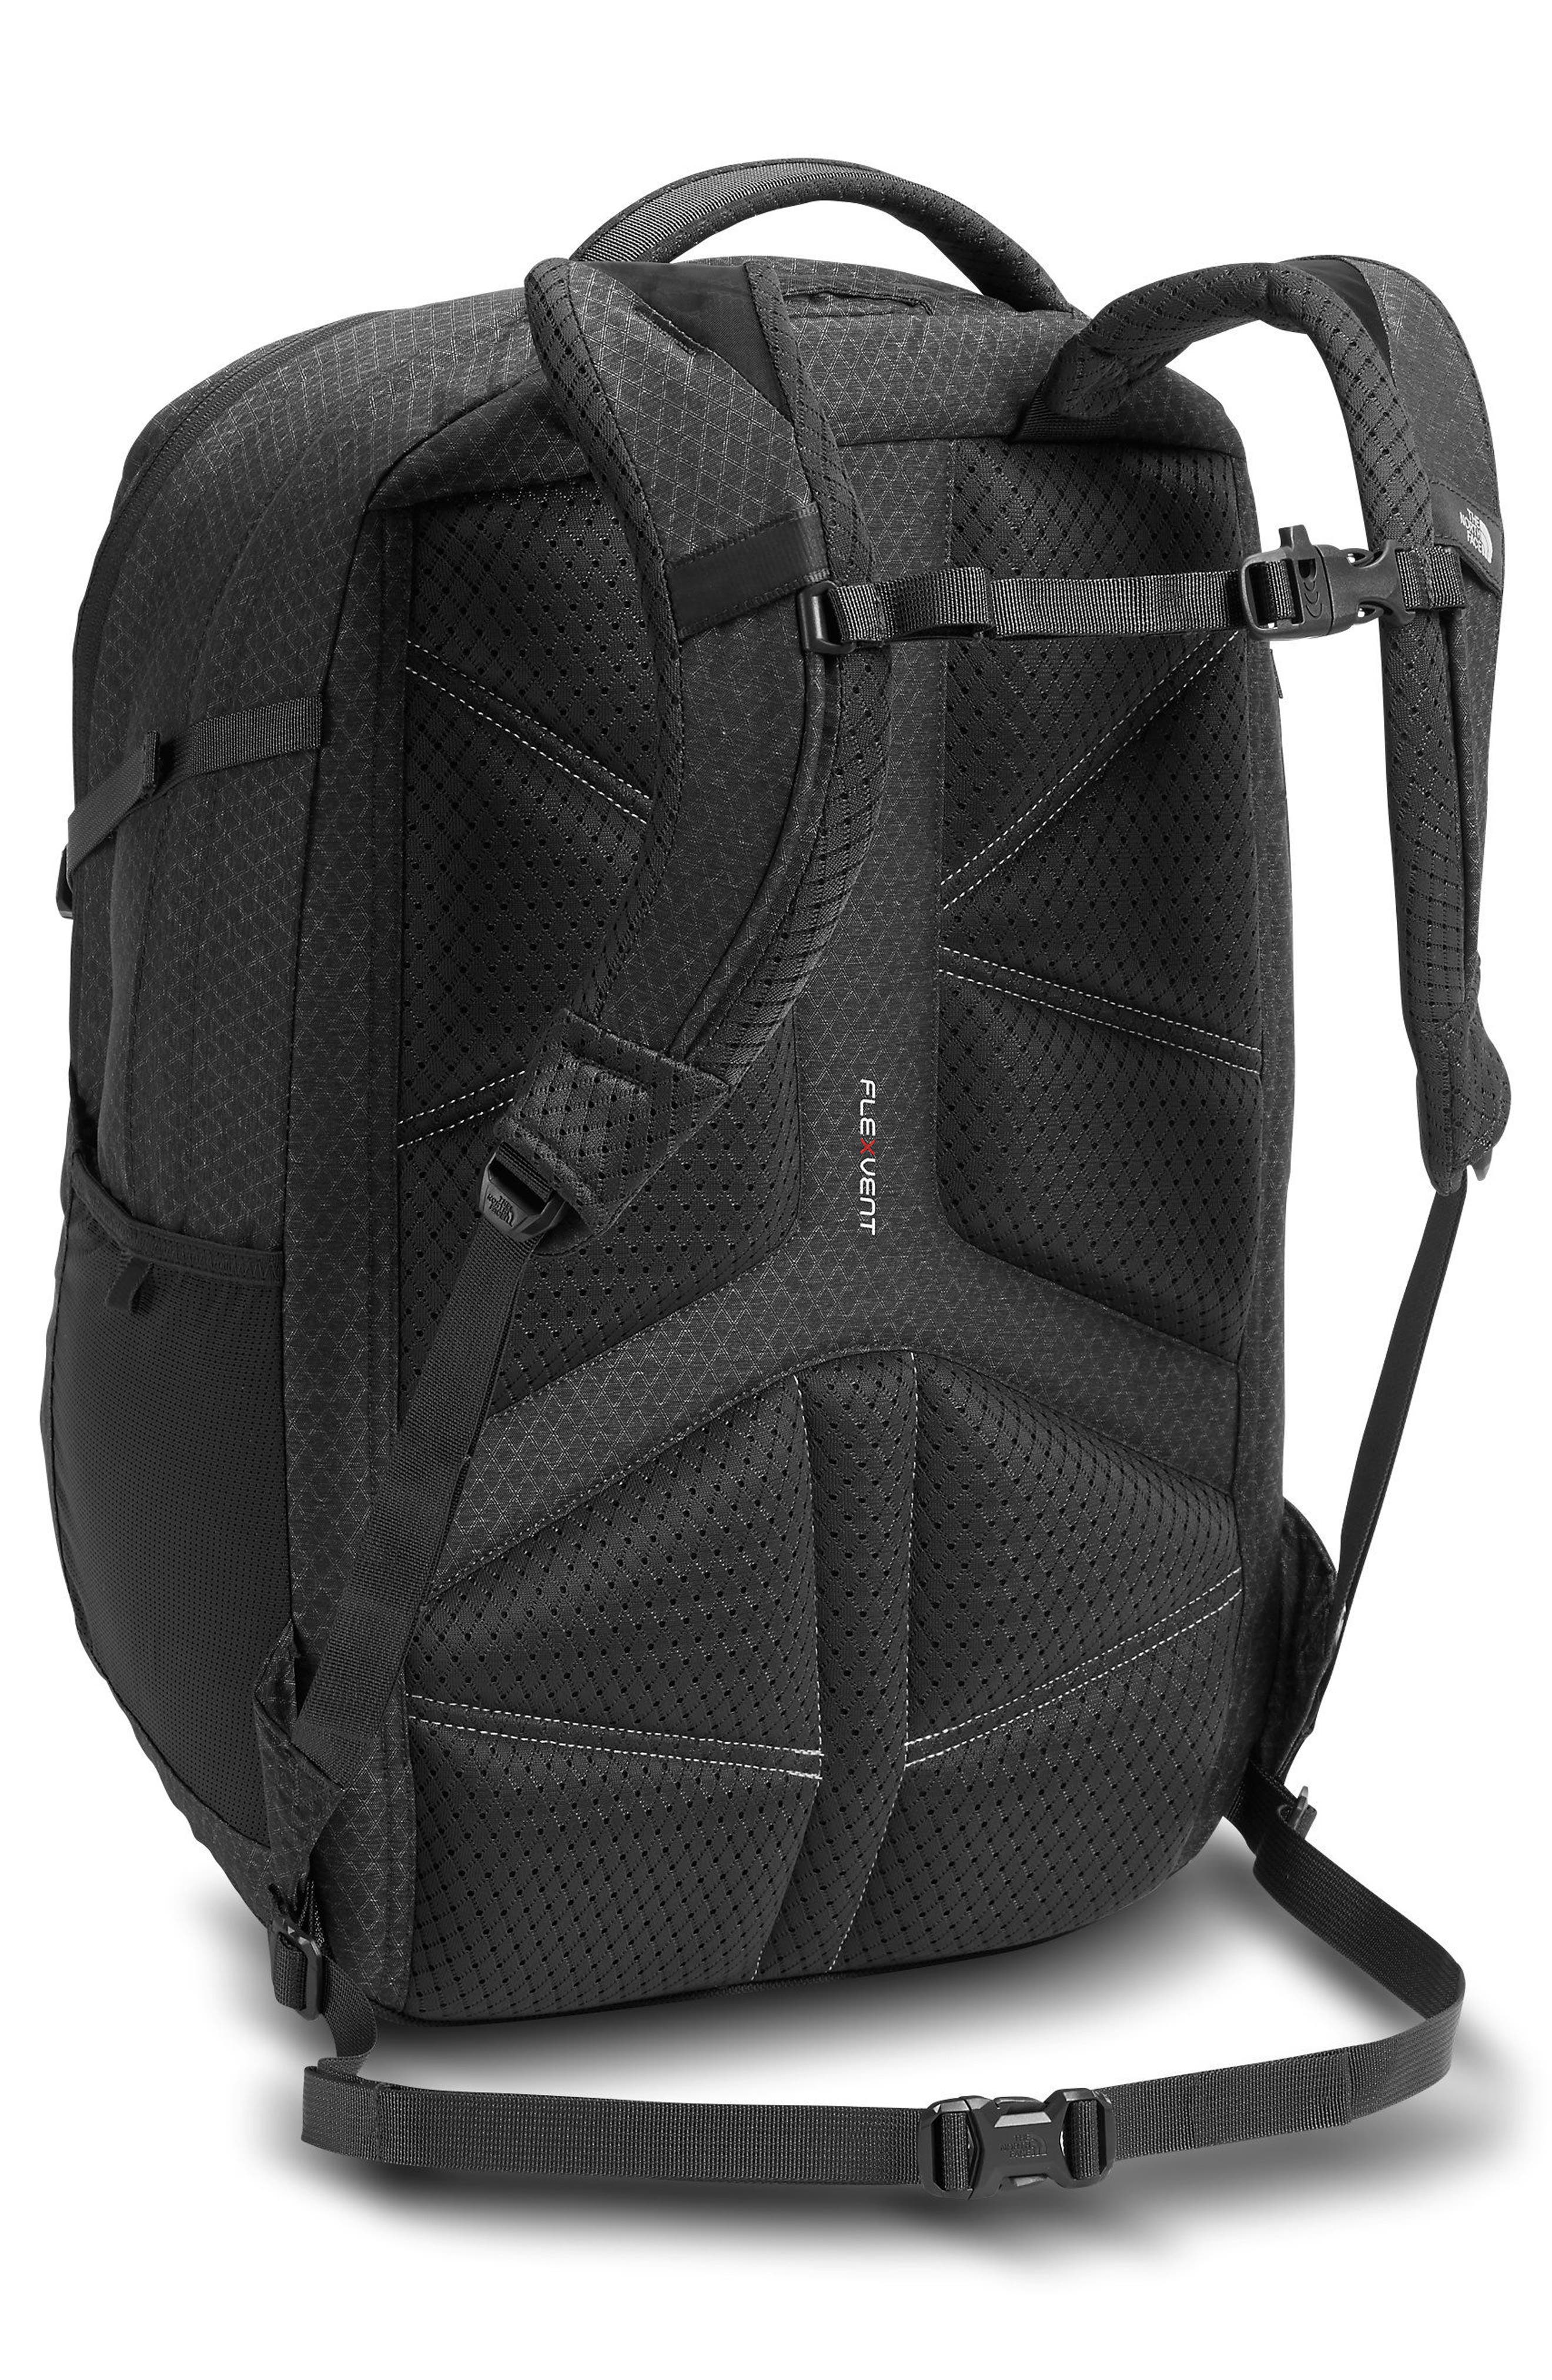 Alternate Image 2  - The North Face 'Recon' Backpack